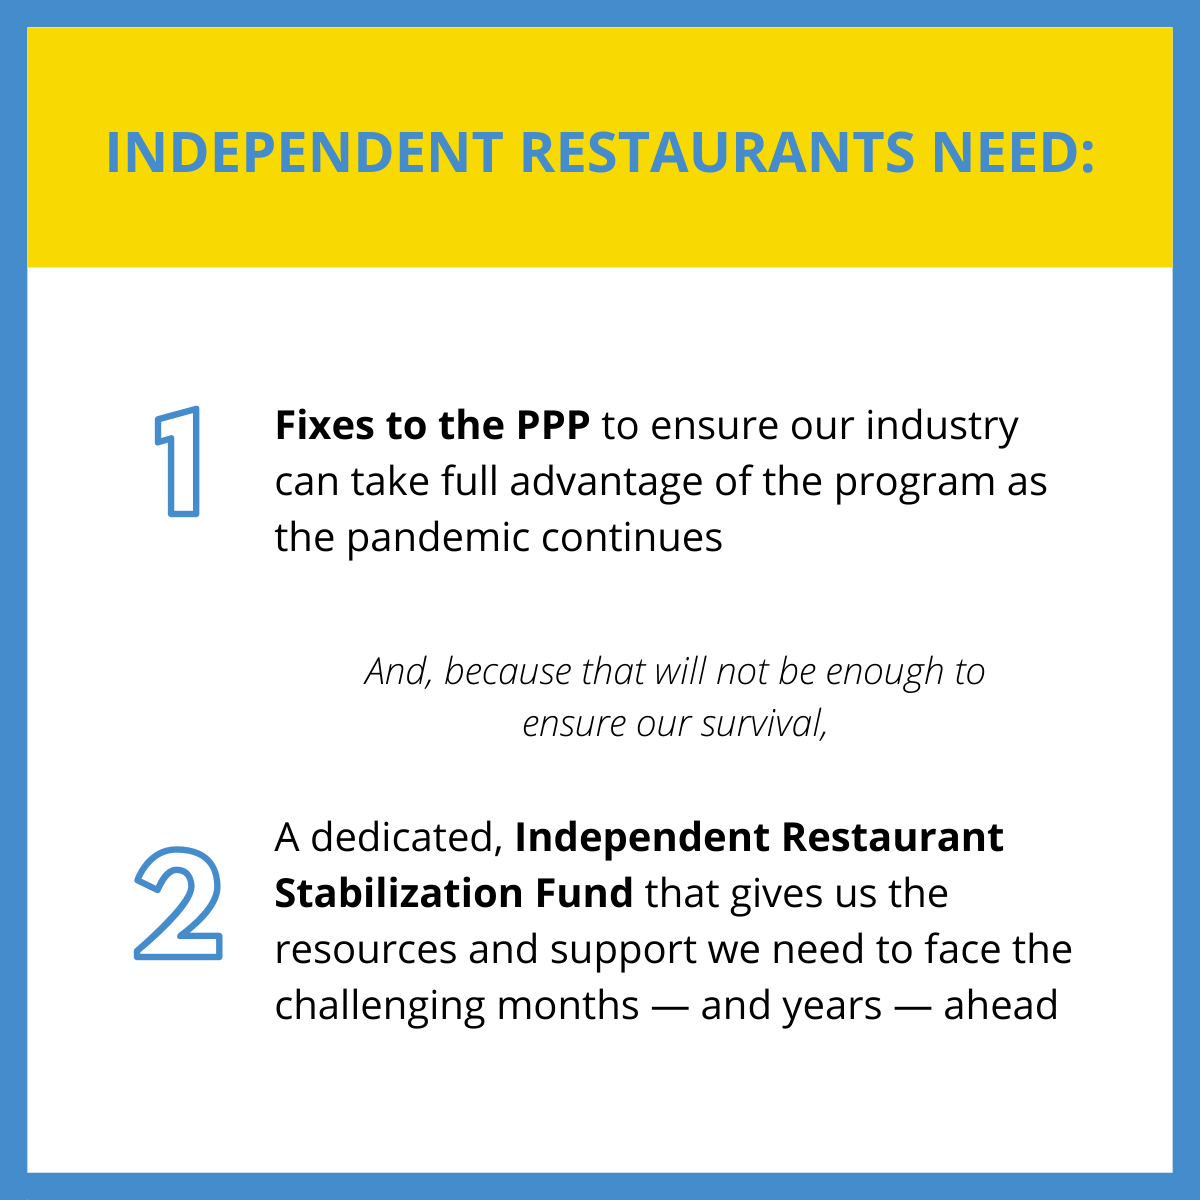 What independent restaurants need from Congress